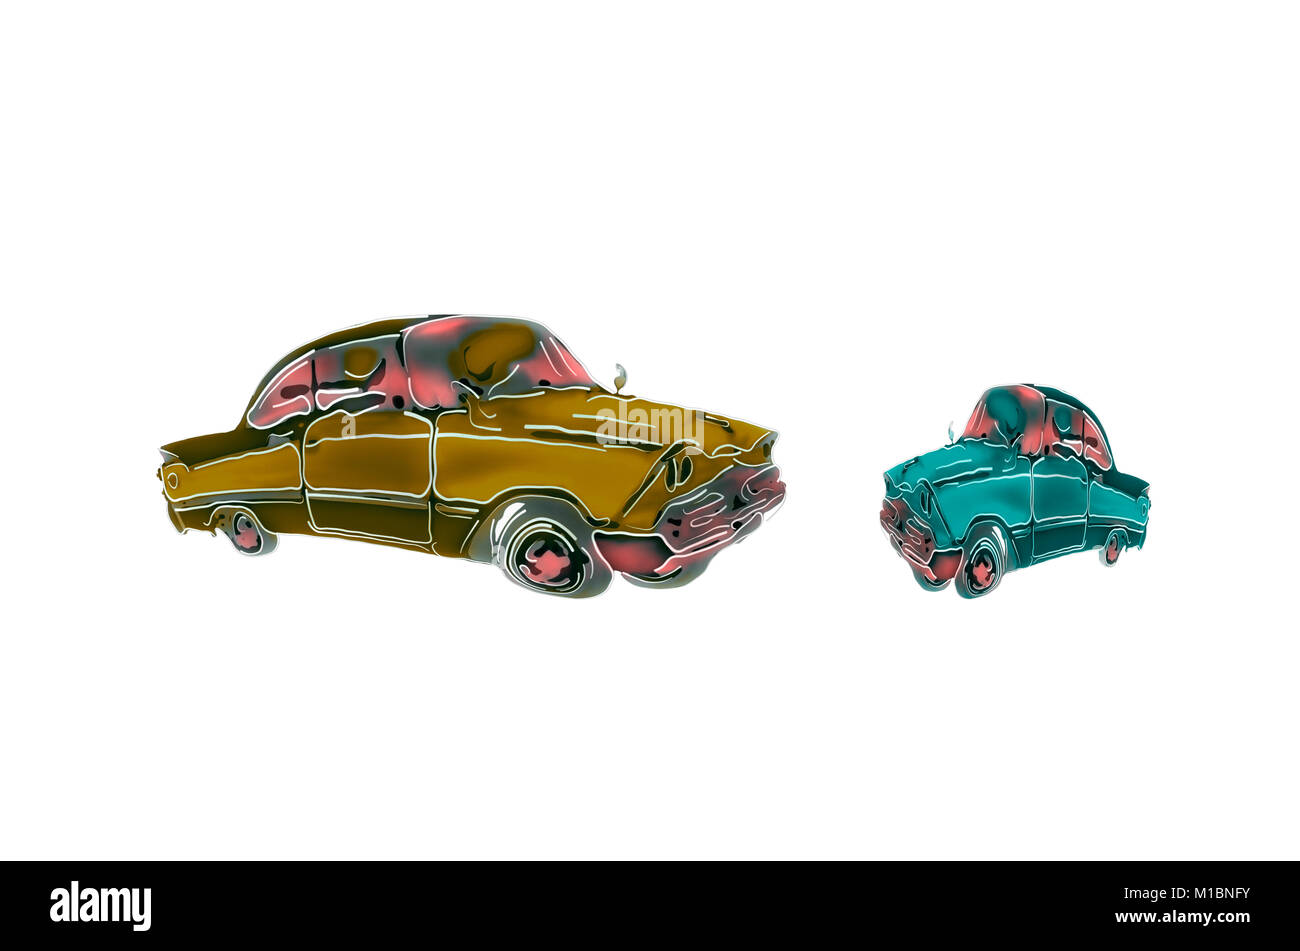 Cartoon illustration of funny, curved, red, green, yellow cars, associated with communication - Stock Image